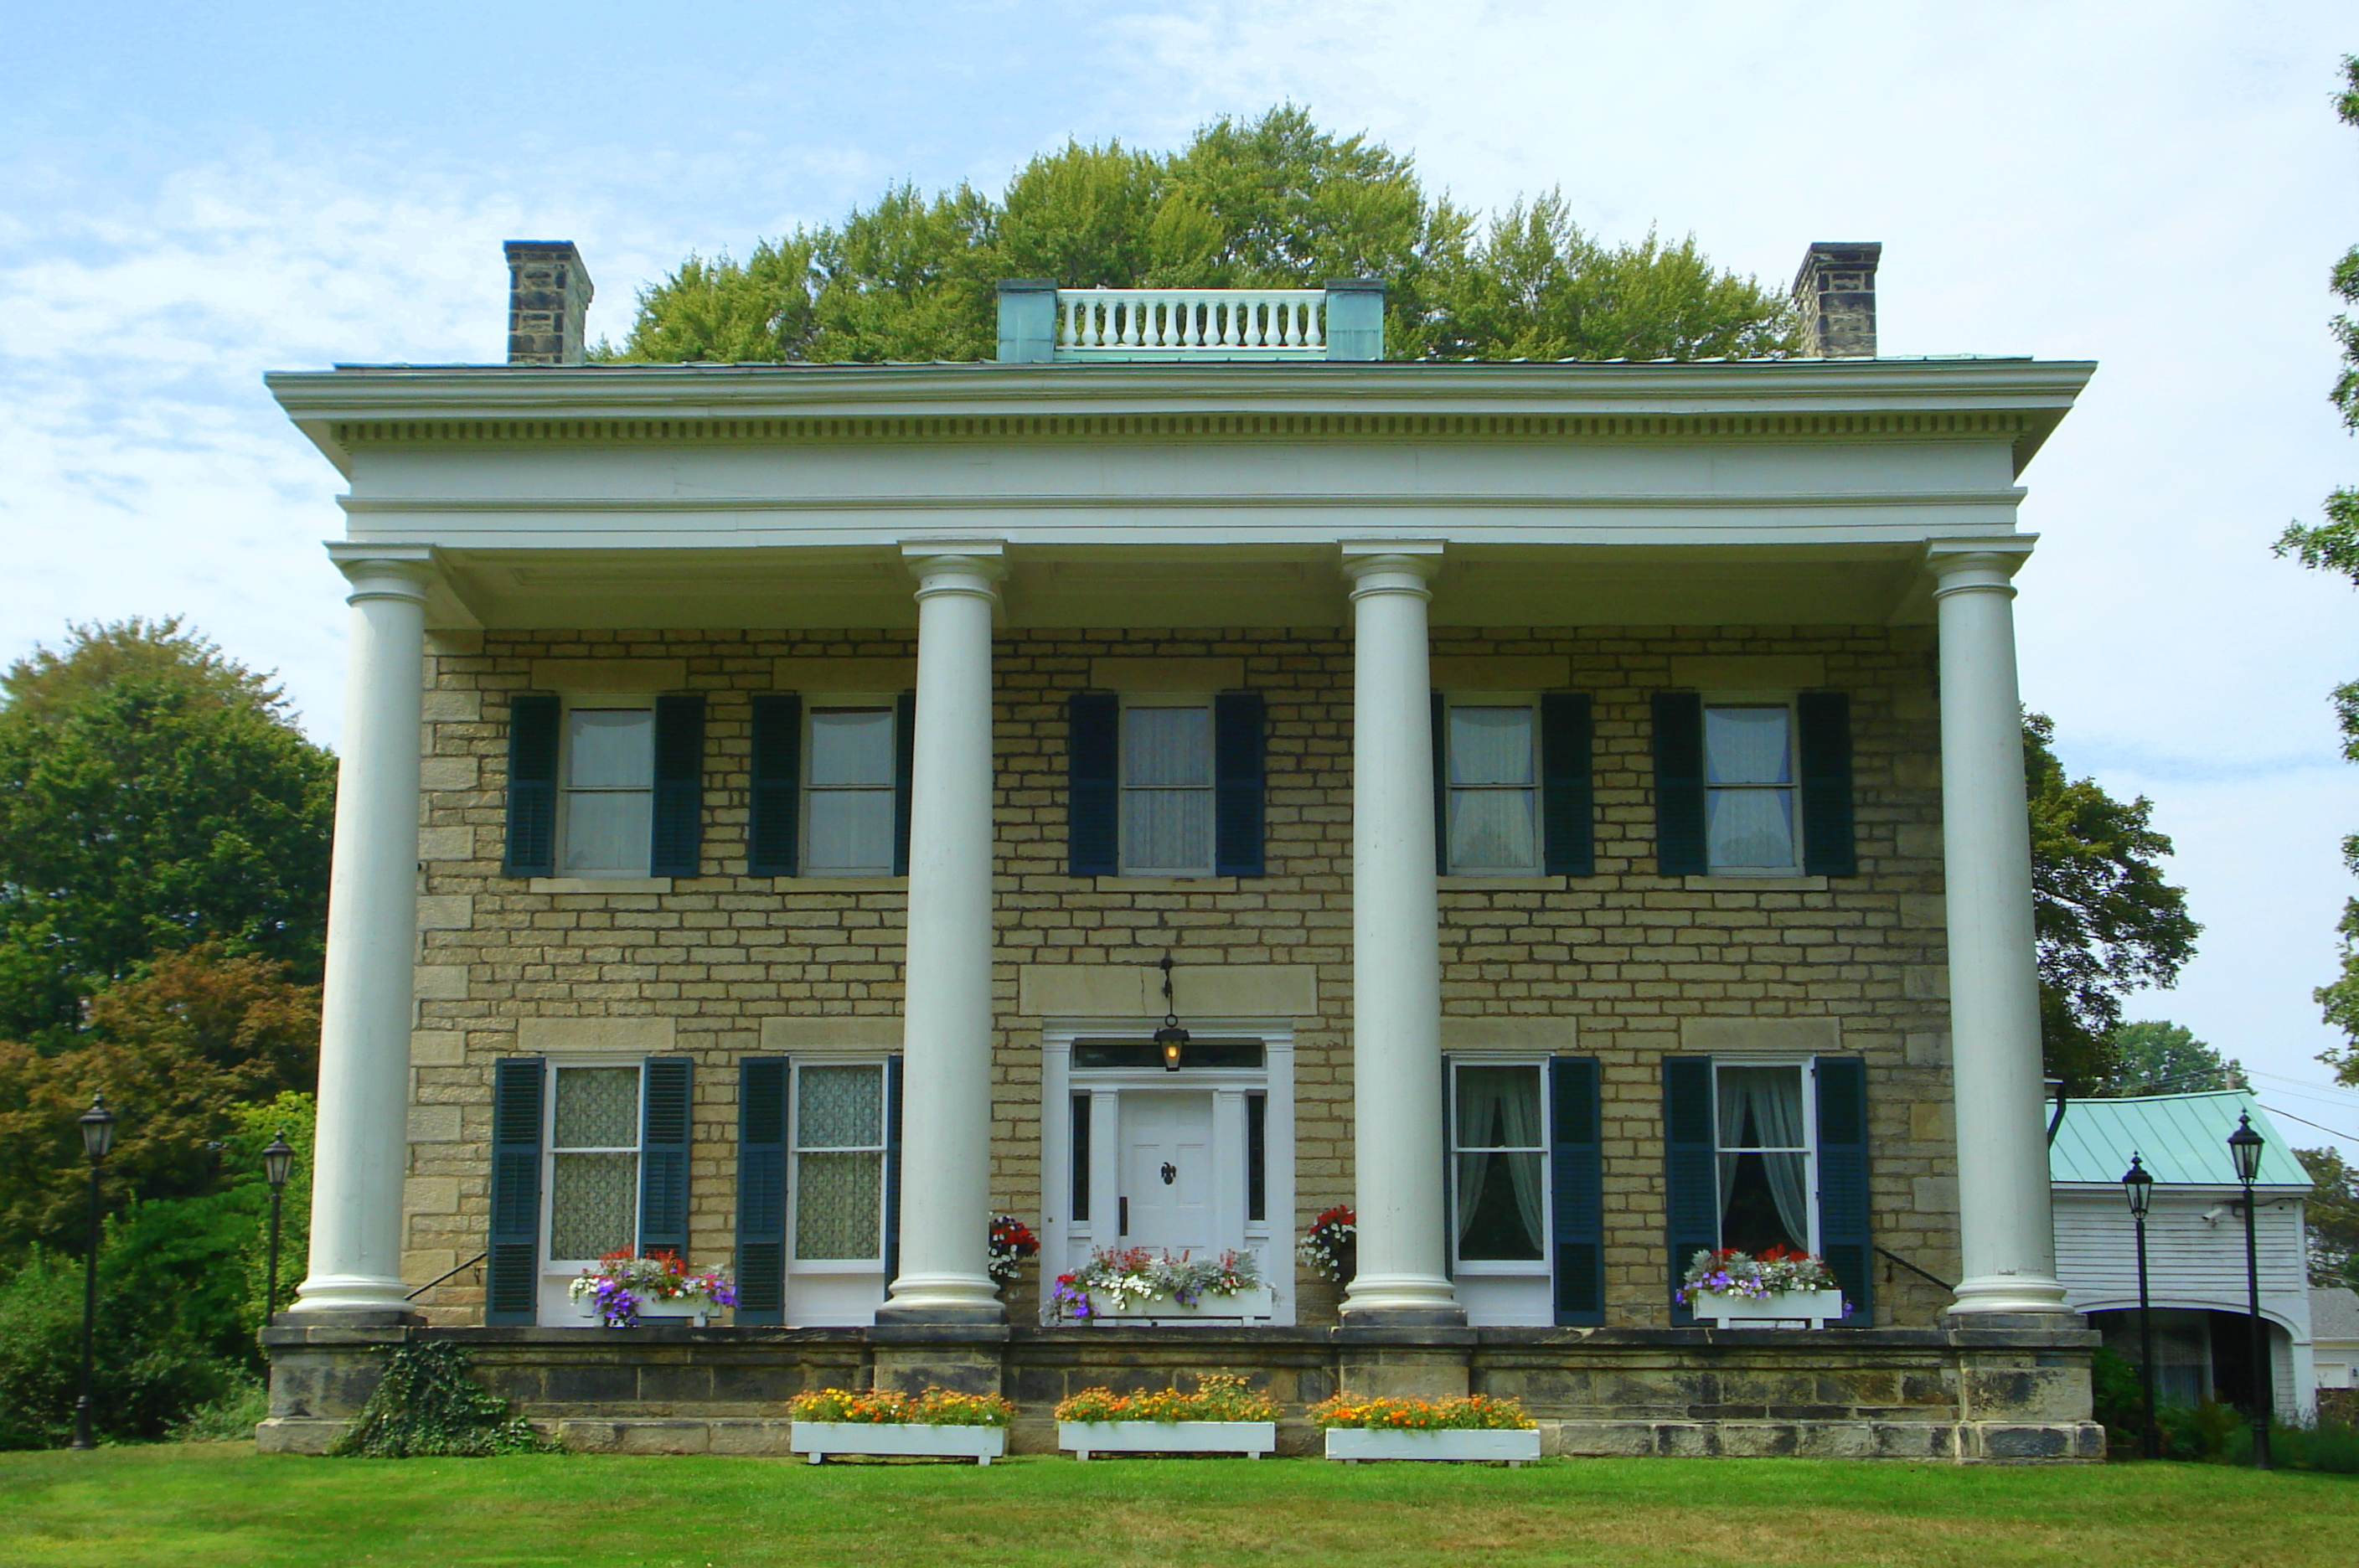 The Perkins Stone Mansion is on the National Register of Historic Places and was built by Colonel Simon Perkins, the son of Akron, Ohio's founder General Simon Perkins.